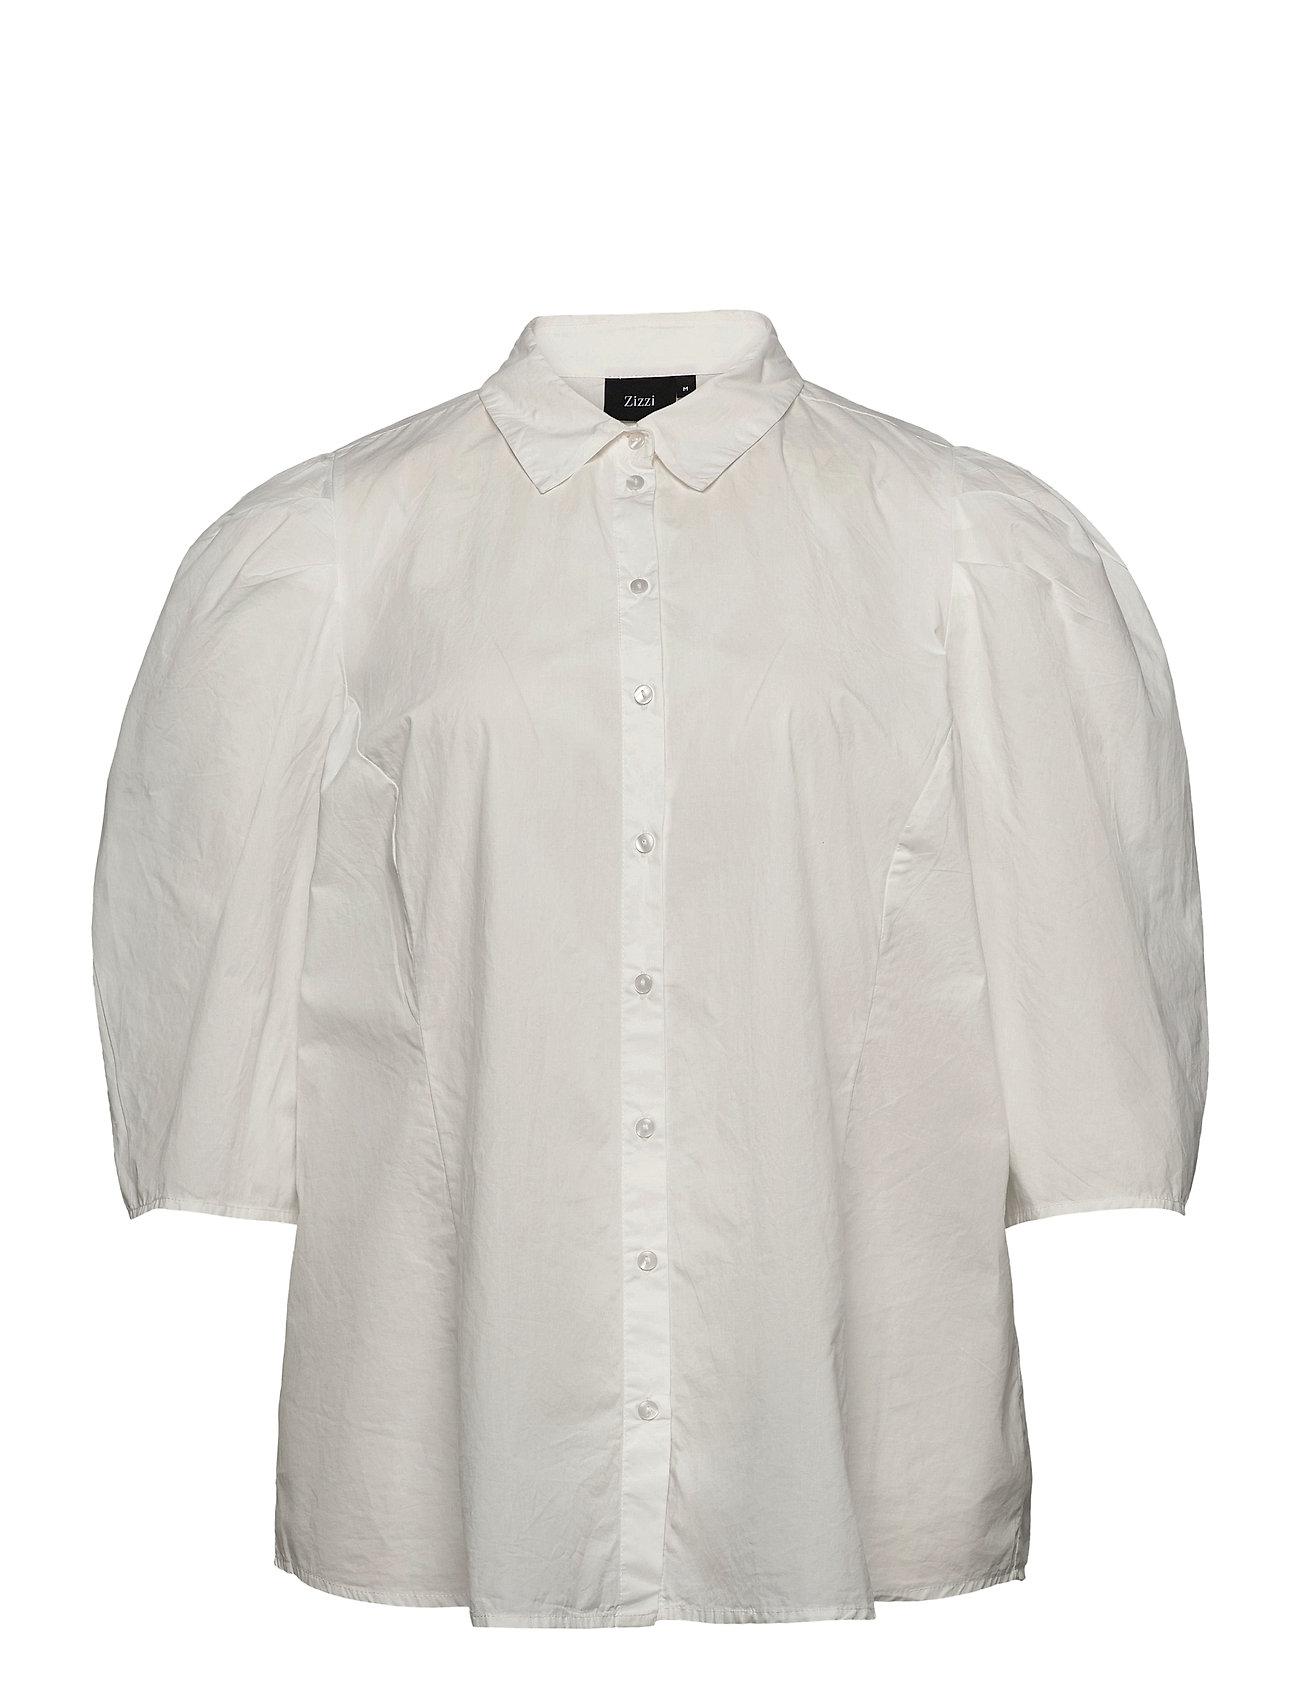 Image of Shirt Puff Sleeves Plus Cotton Buttons Kortærmet Skjorte Hvid Zizzi (3443781201)